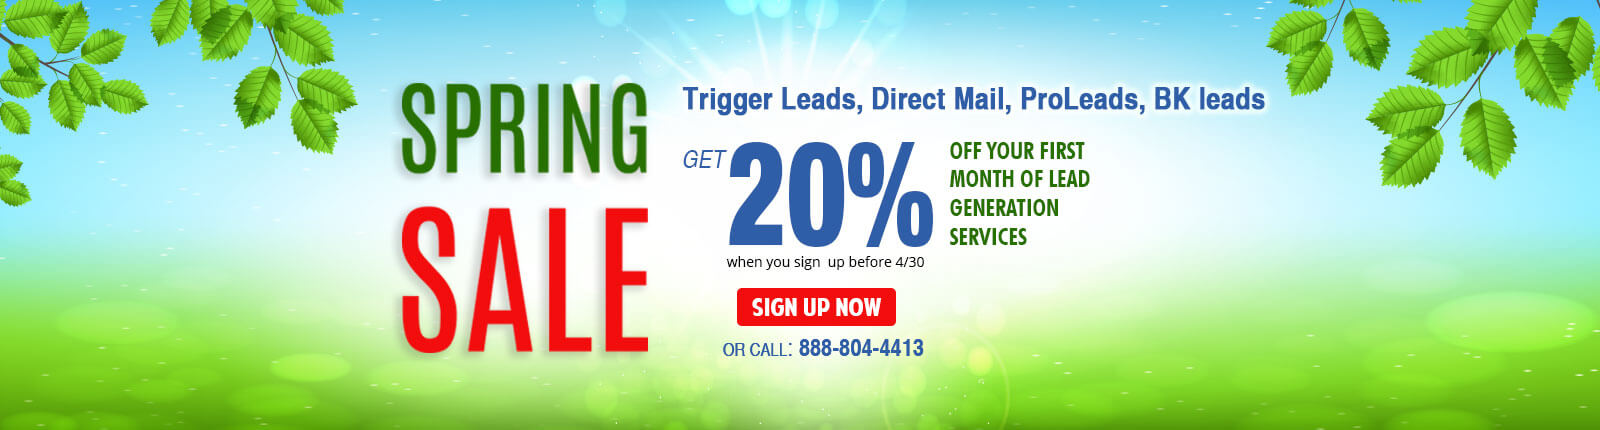 Lead generation product sale